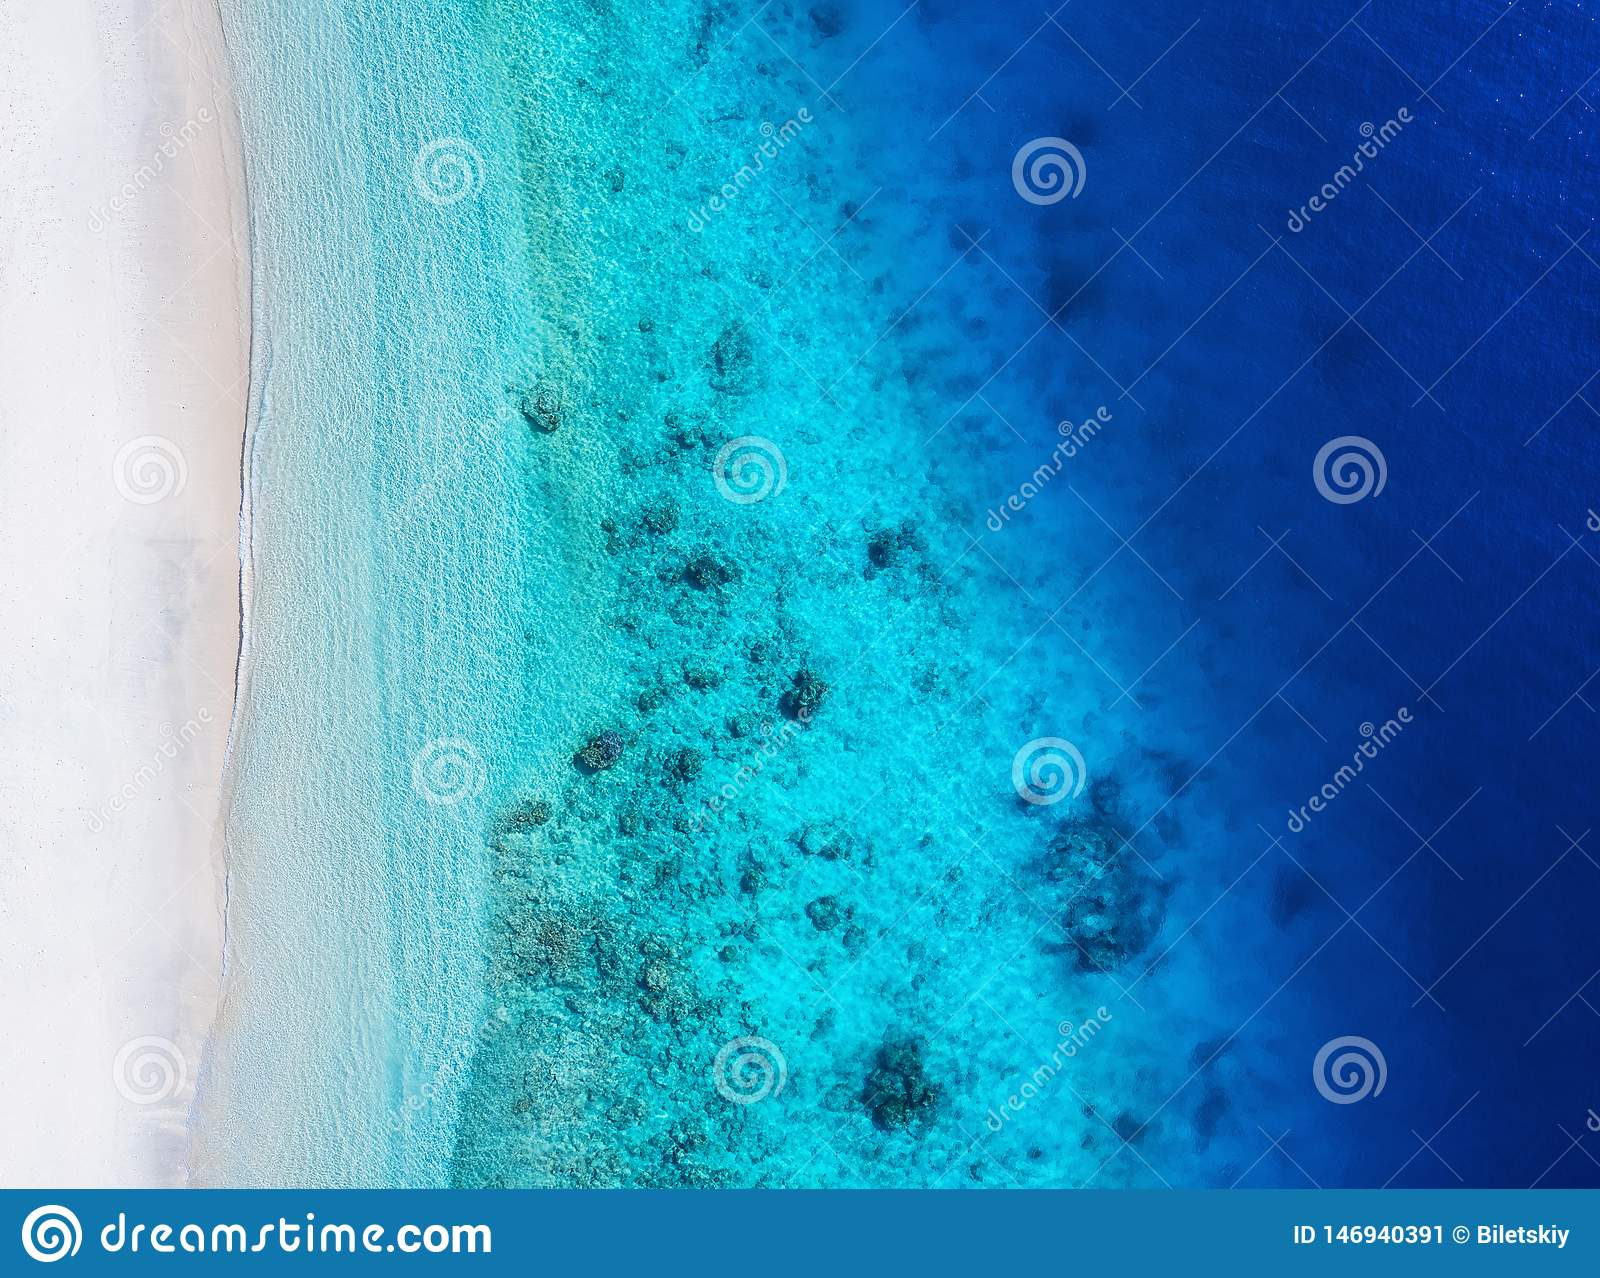 Coast as a background from top view. Turquoise water background from top view. Summer seascape from air.